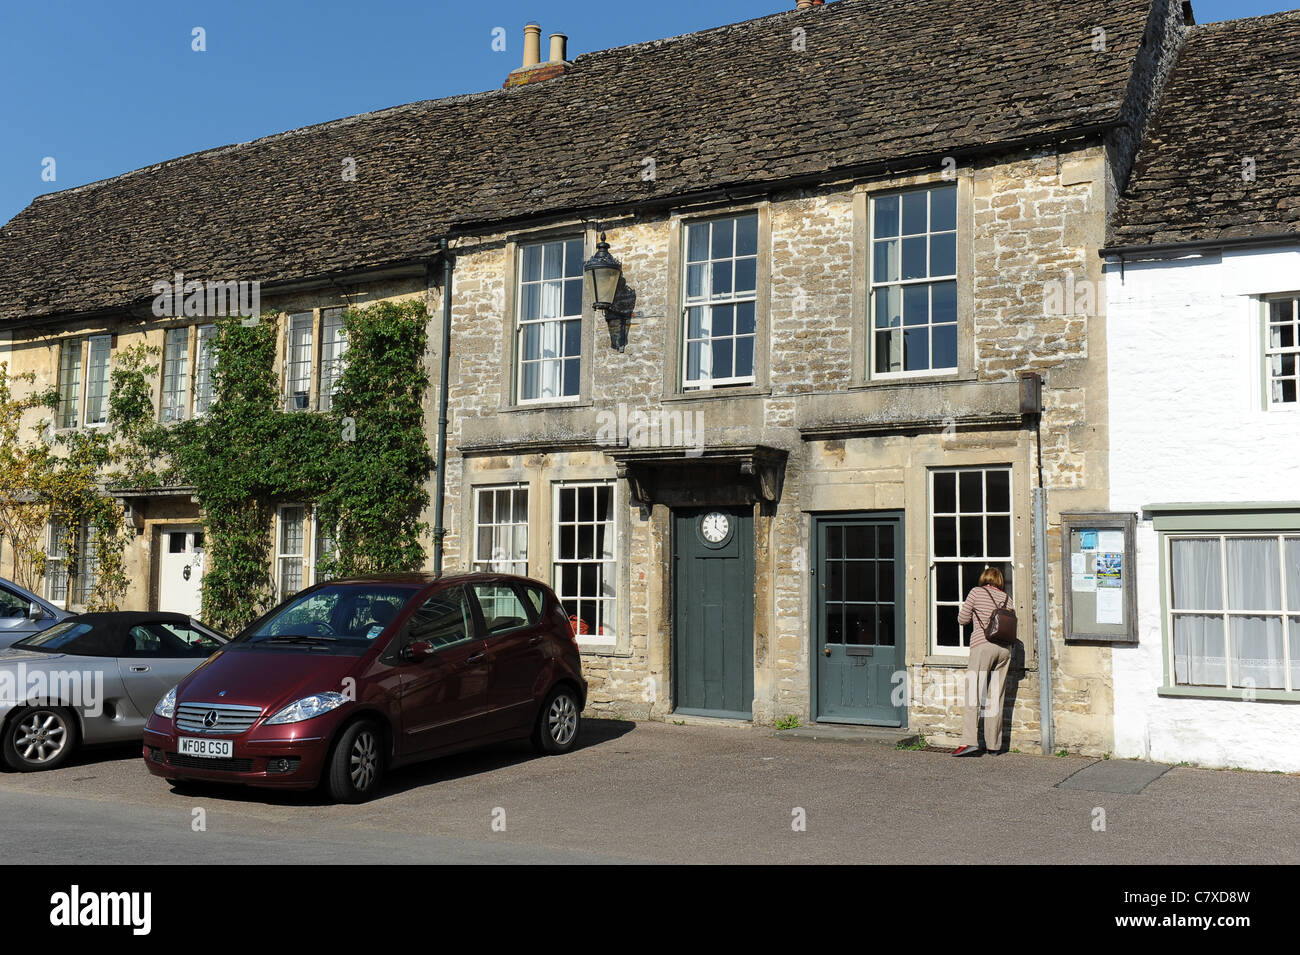 The Village of Lacock Wiltshire Uk - Stock Image